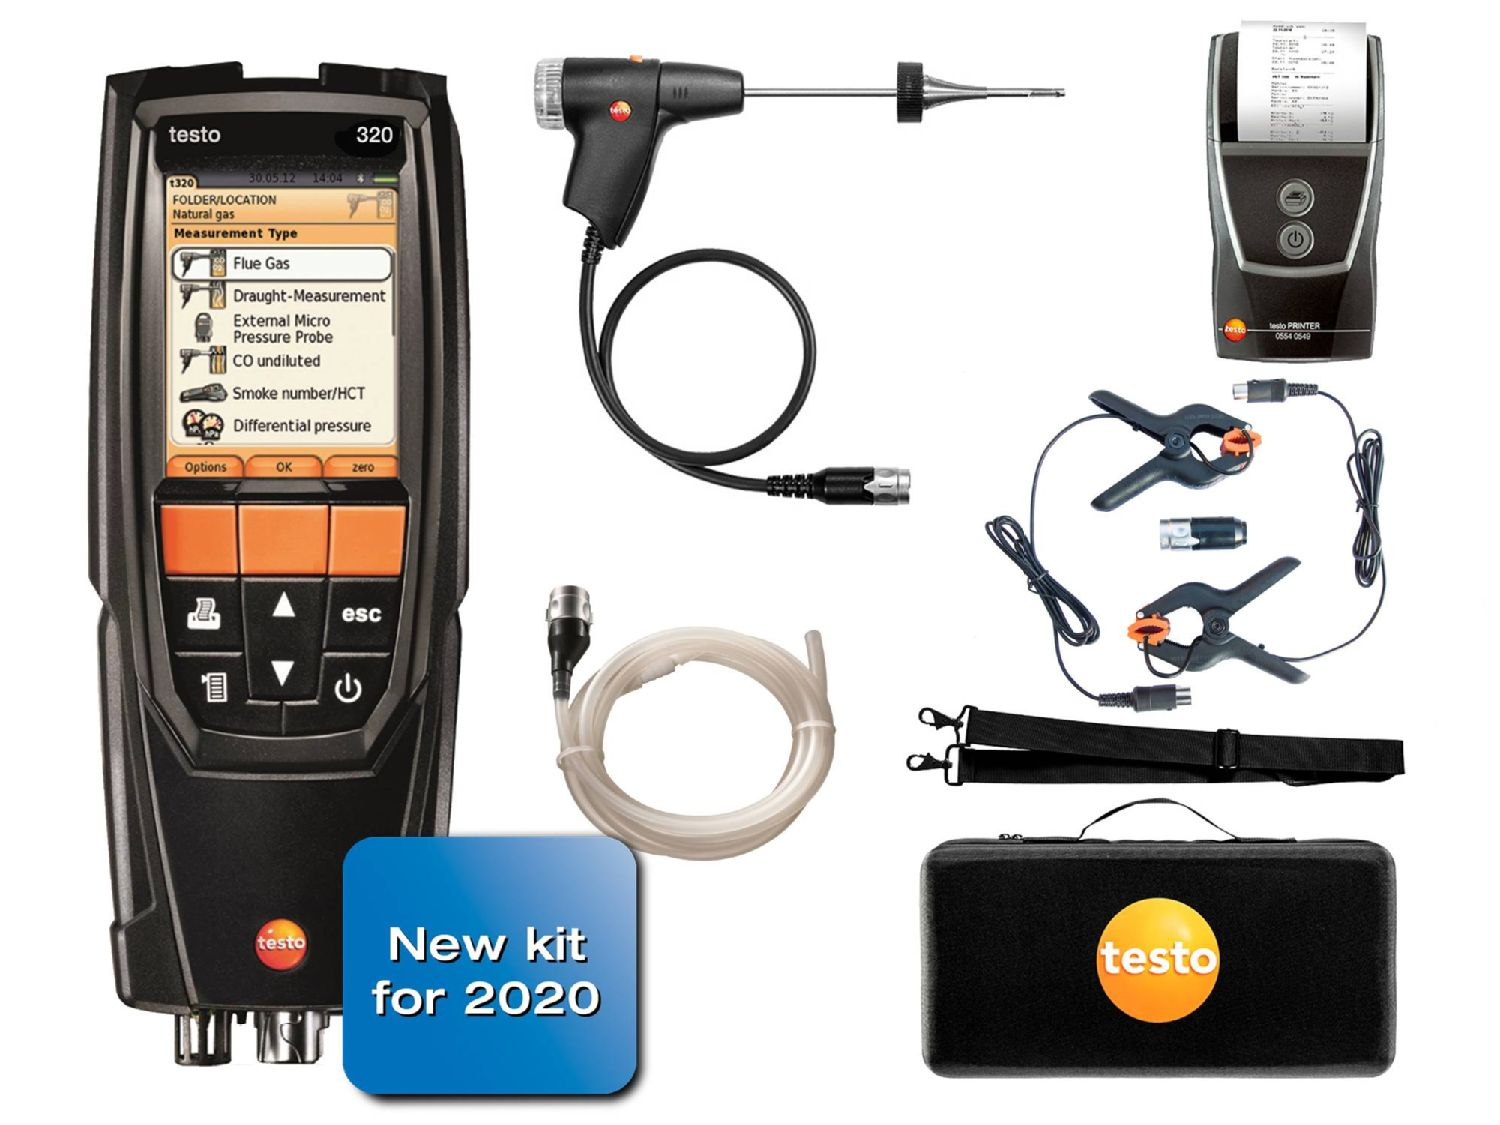 testo 320 Advanced Kit 0563 3220 81.jpg